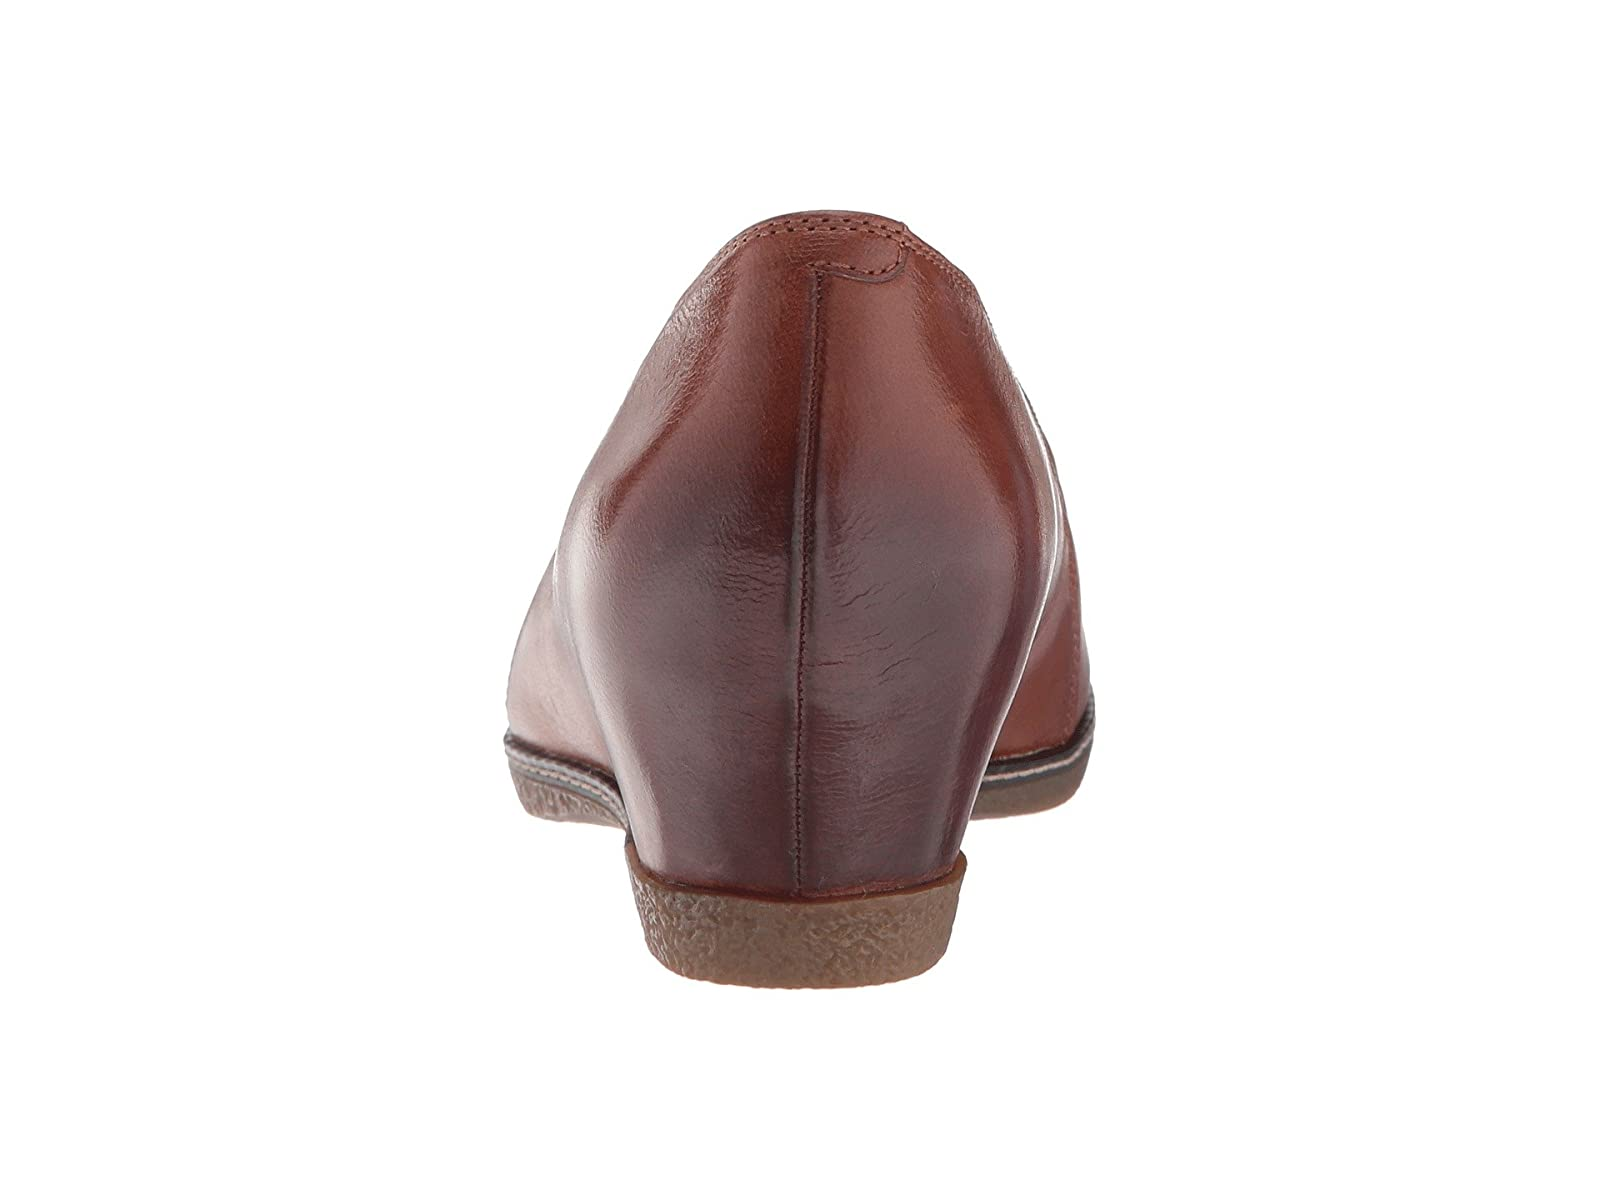 Man's/Woman's Man/Woman Dansko Dansko Dansko Liliana Attractive And Durable  Selling Online Store 54954e